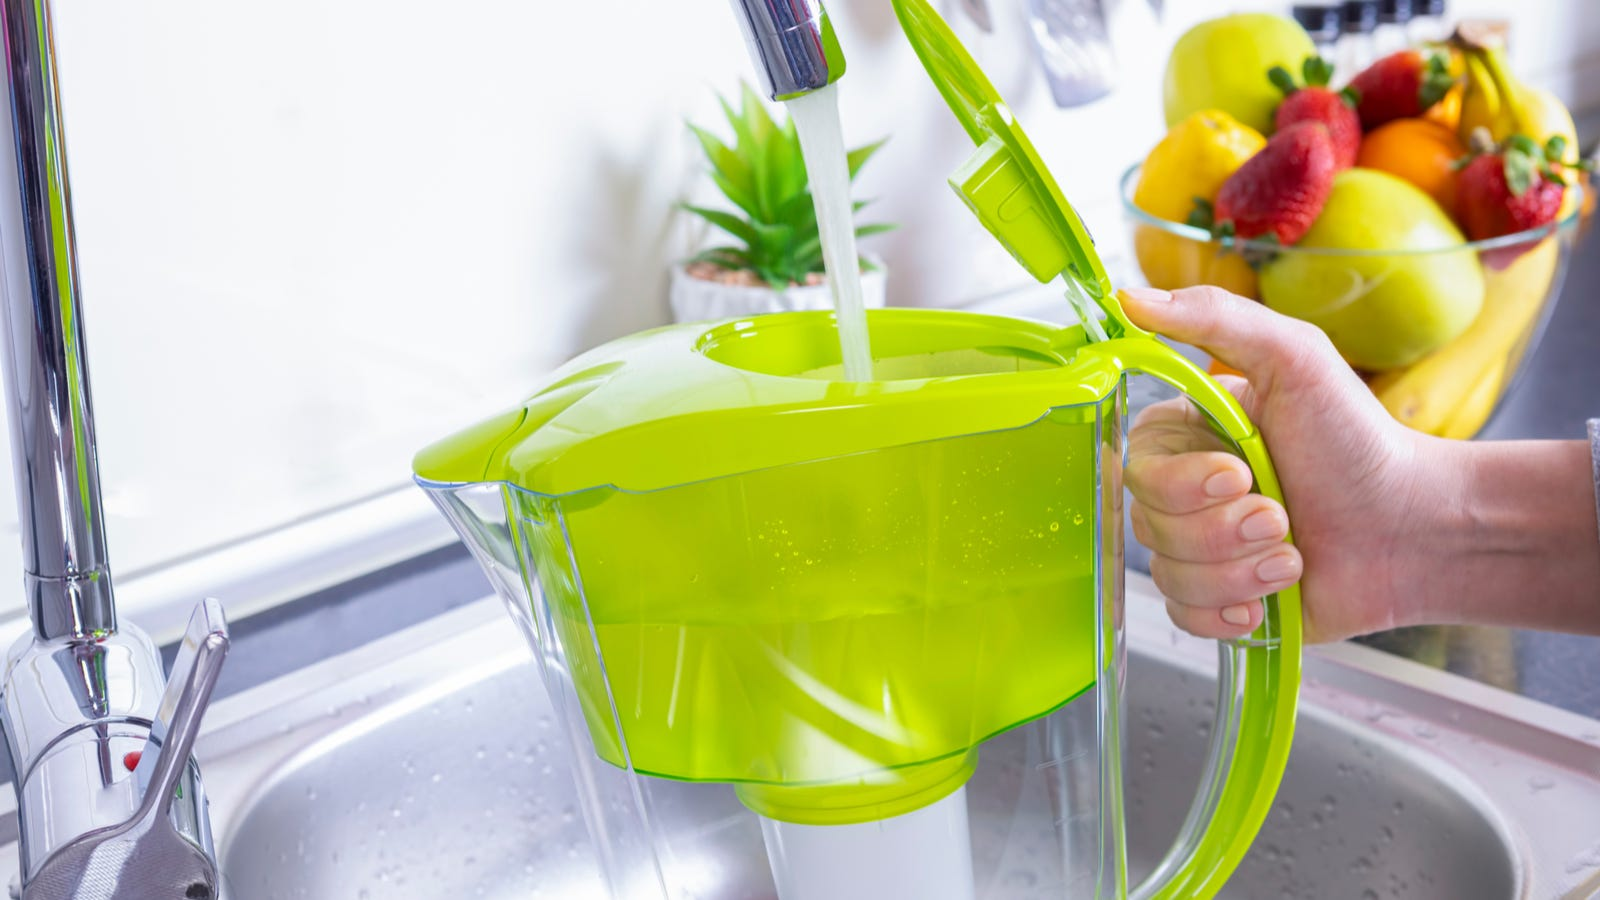 A person filling a water filter pitcher at the sink with a bowl of fruit in the background.